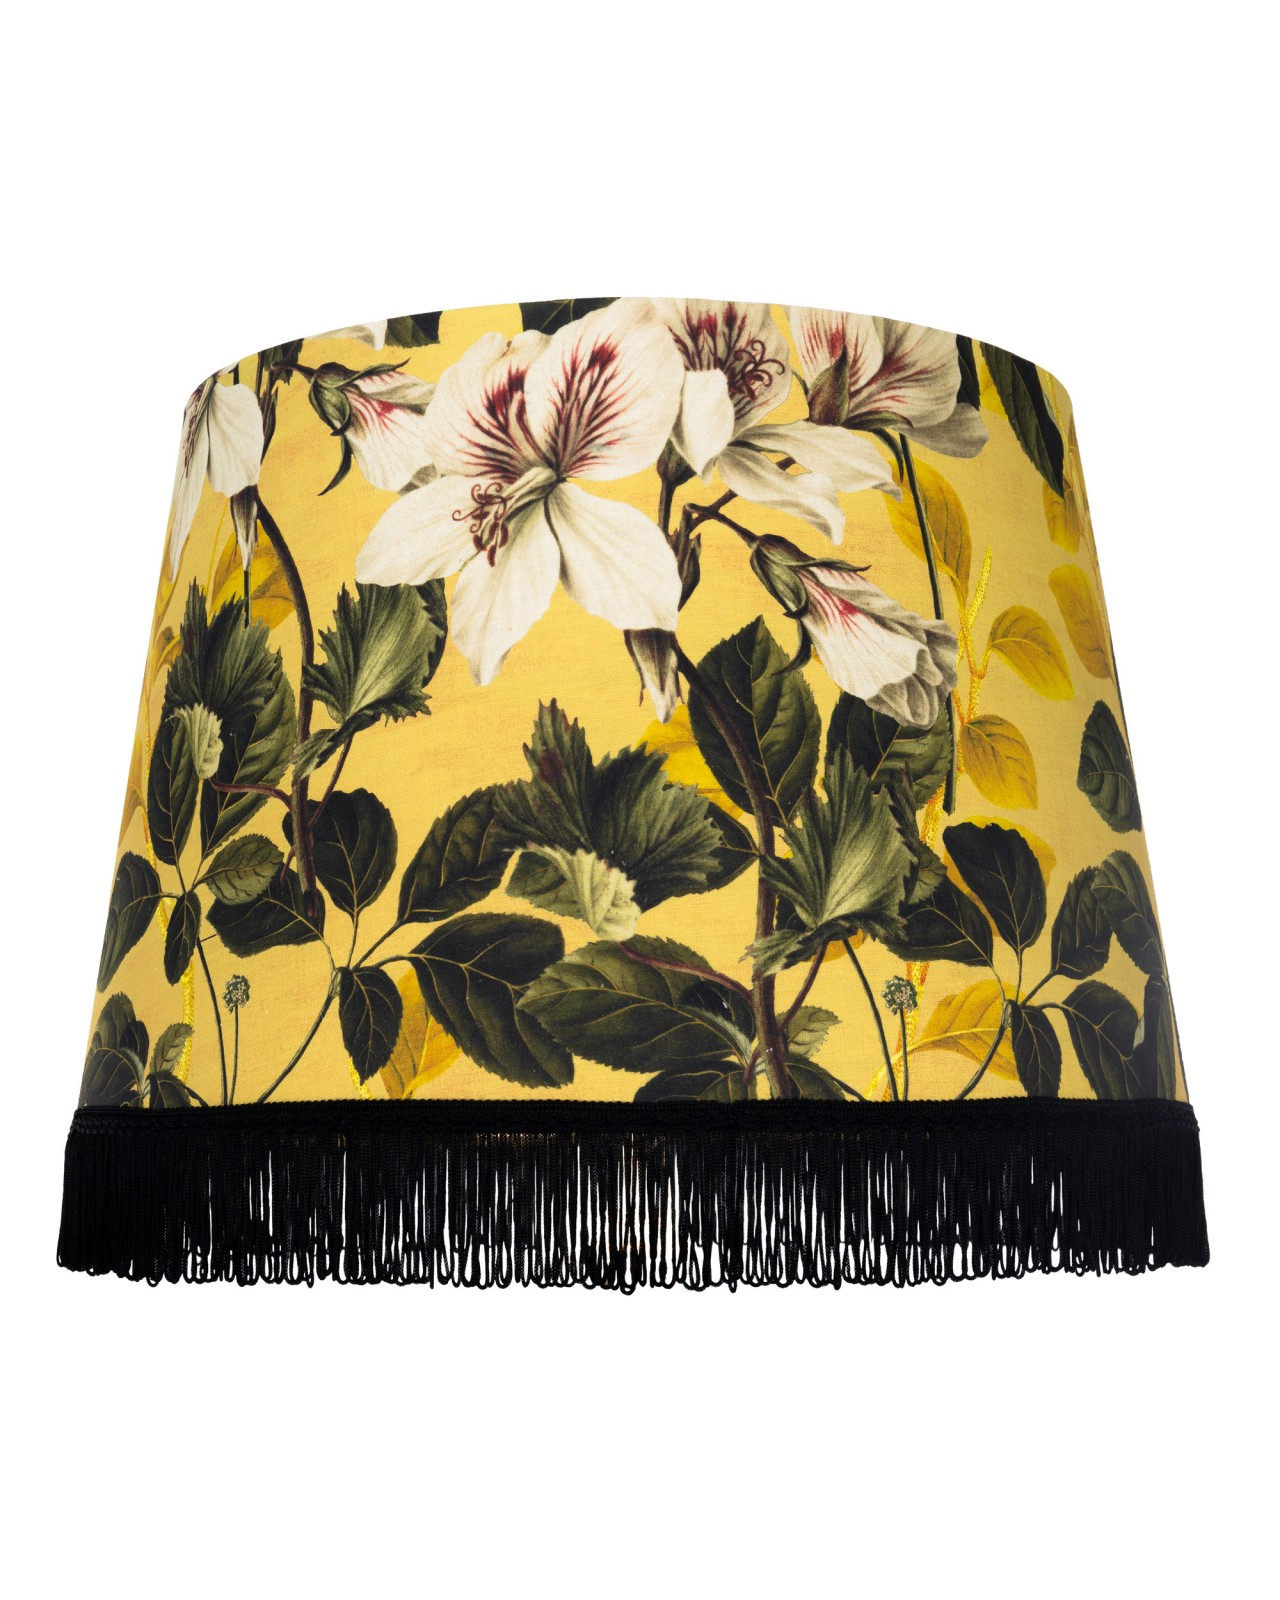 YELLOW GARDEN Lampshade